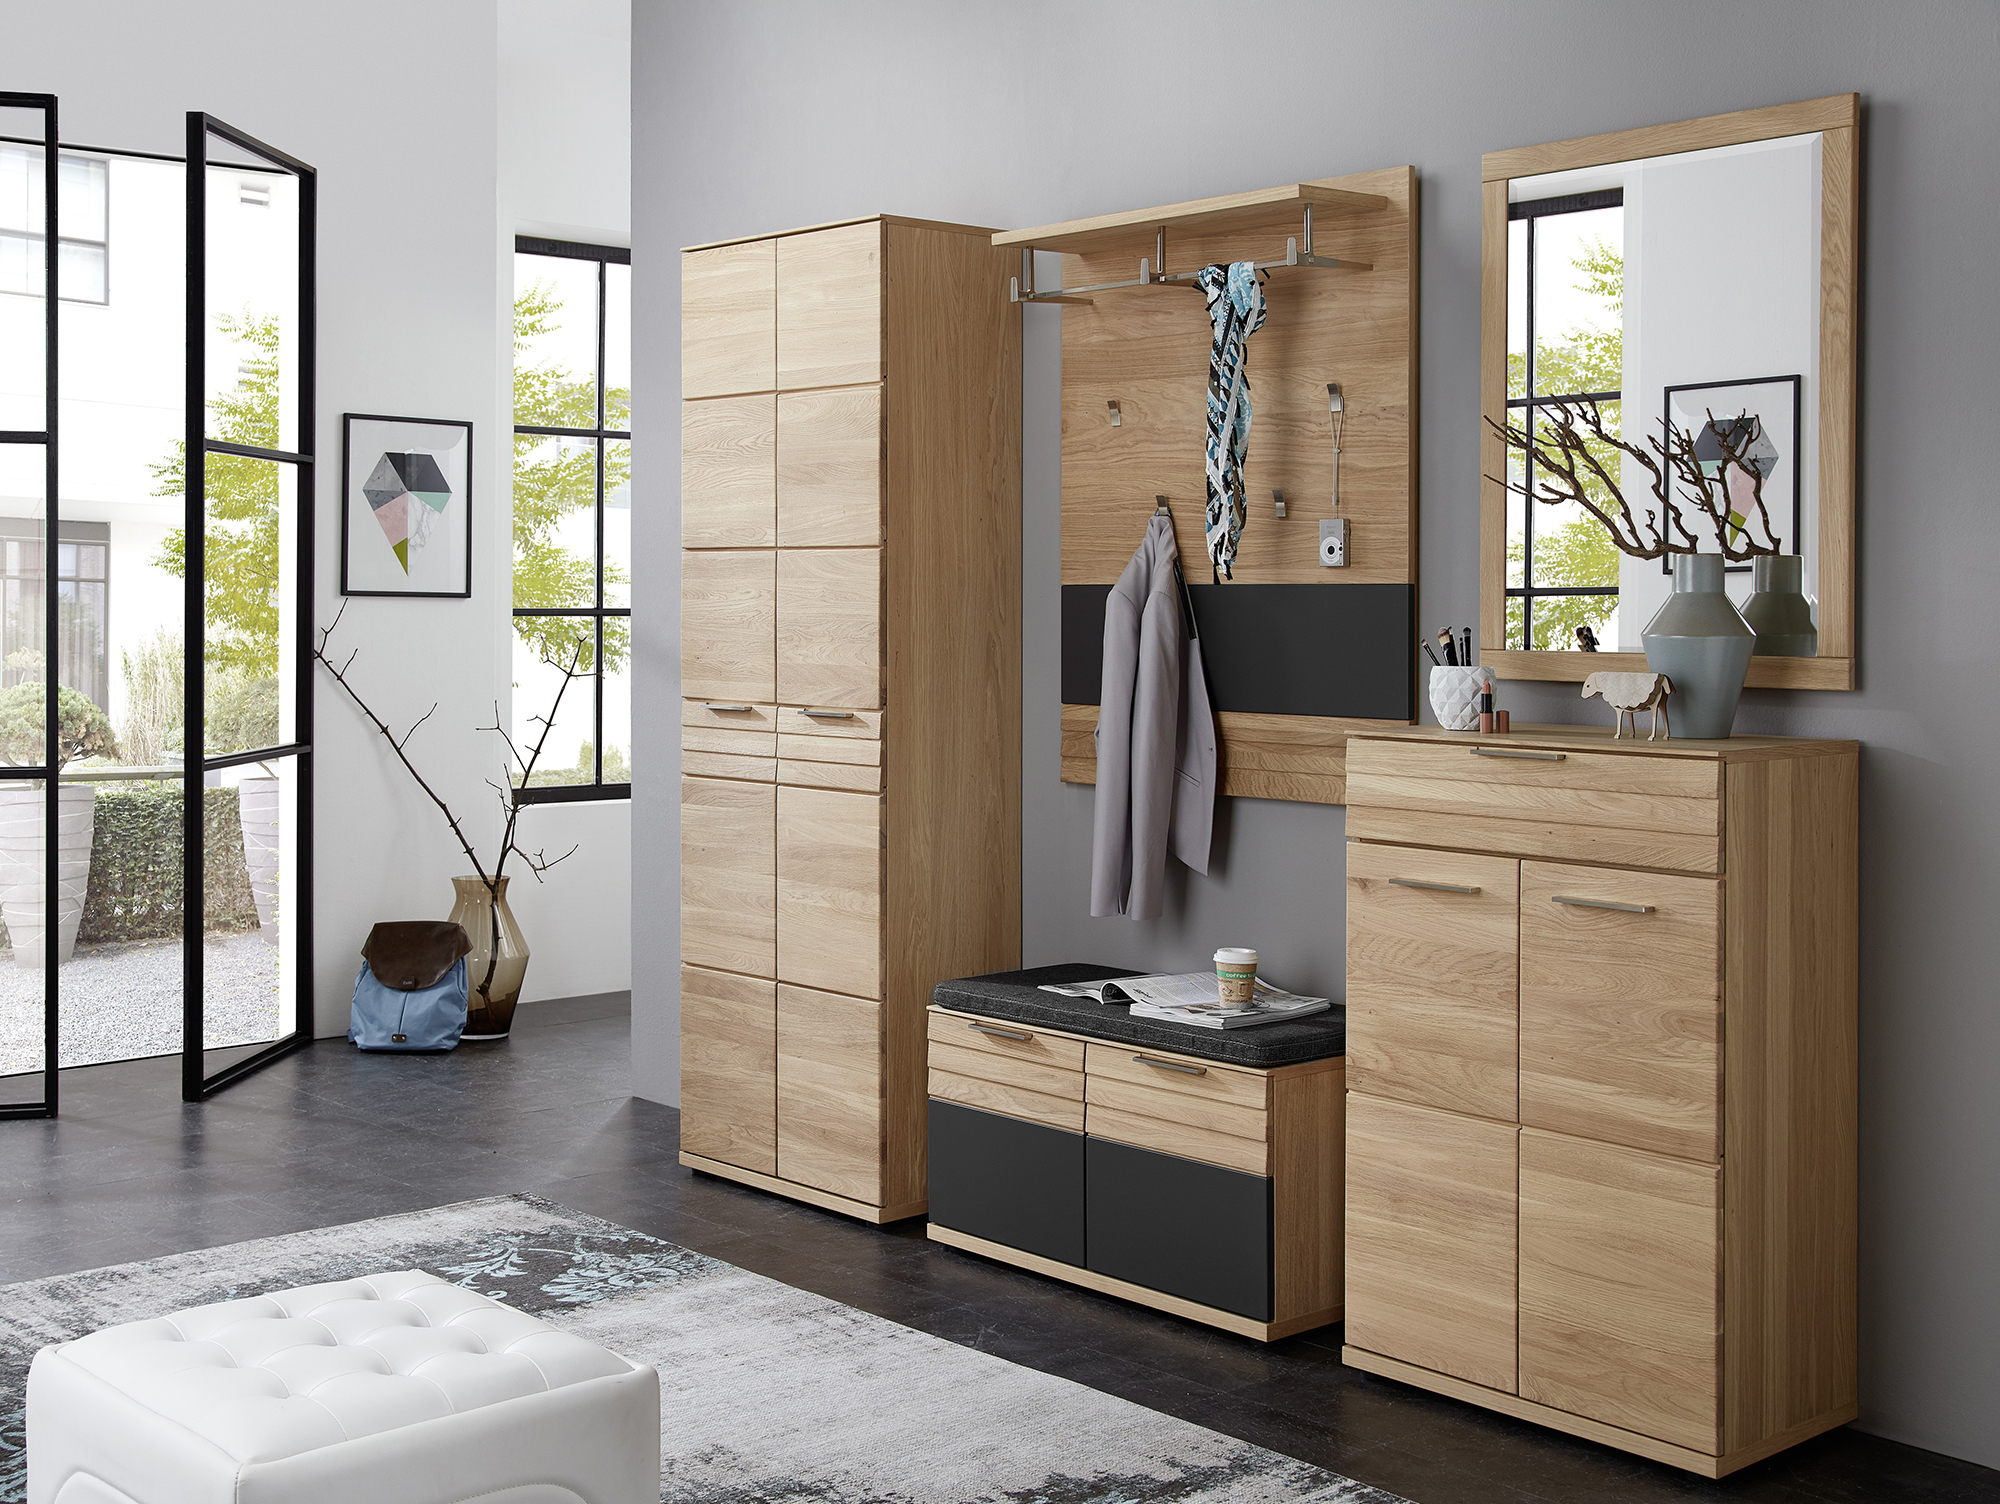 ambar garderobensitzbank klein wildeiche teilmassiv. Black Bedroom Furniture Sets. Home Design Ideas